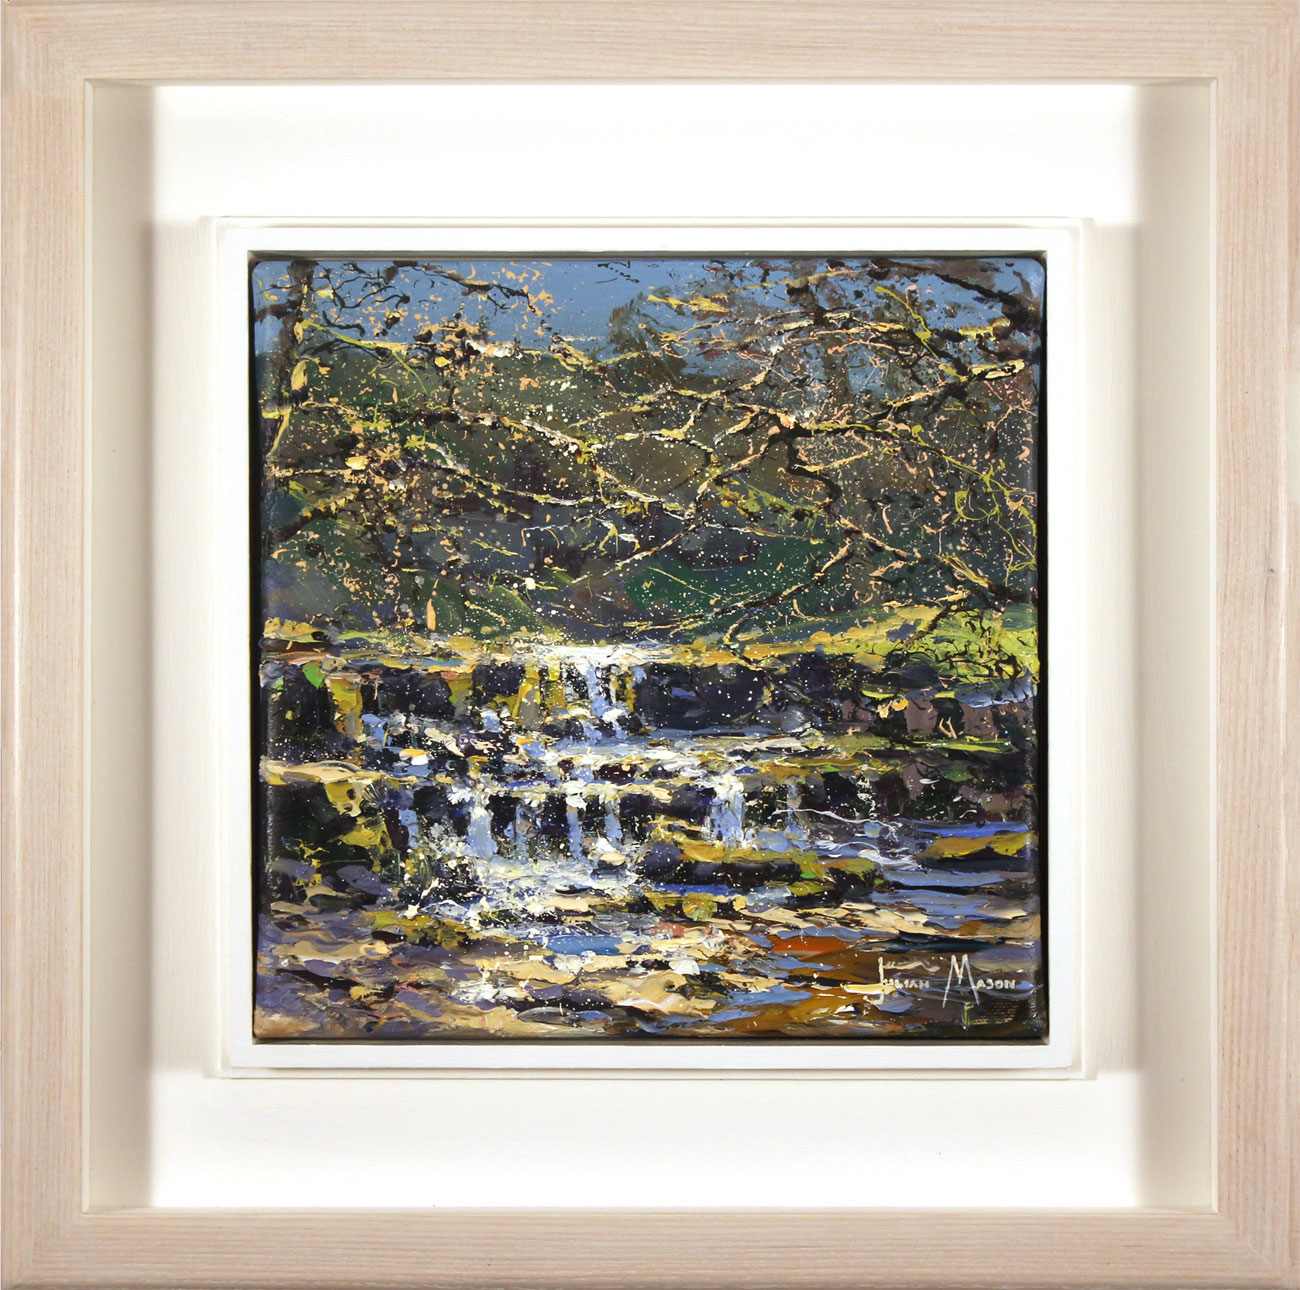 Julian Mason, Original oil painting on canvas, How Stean, Nidderdale Click to enlarge